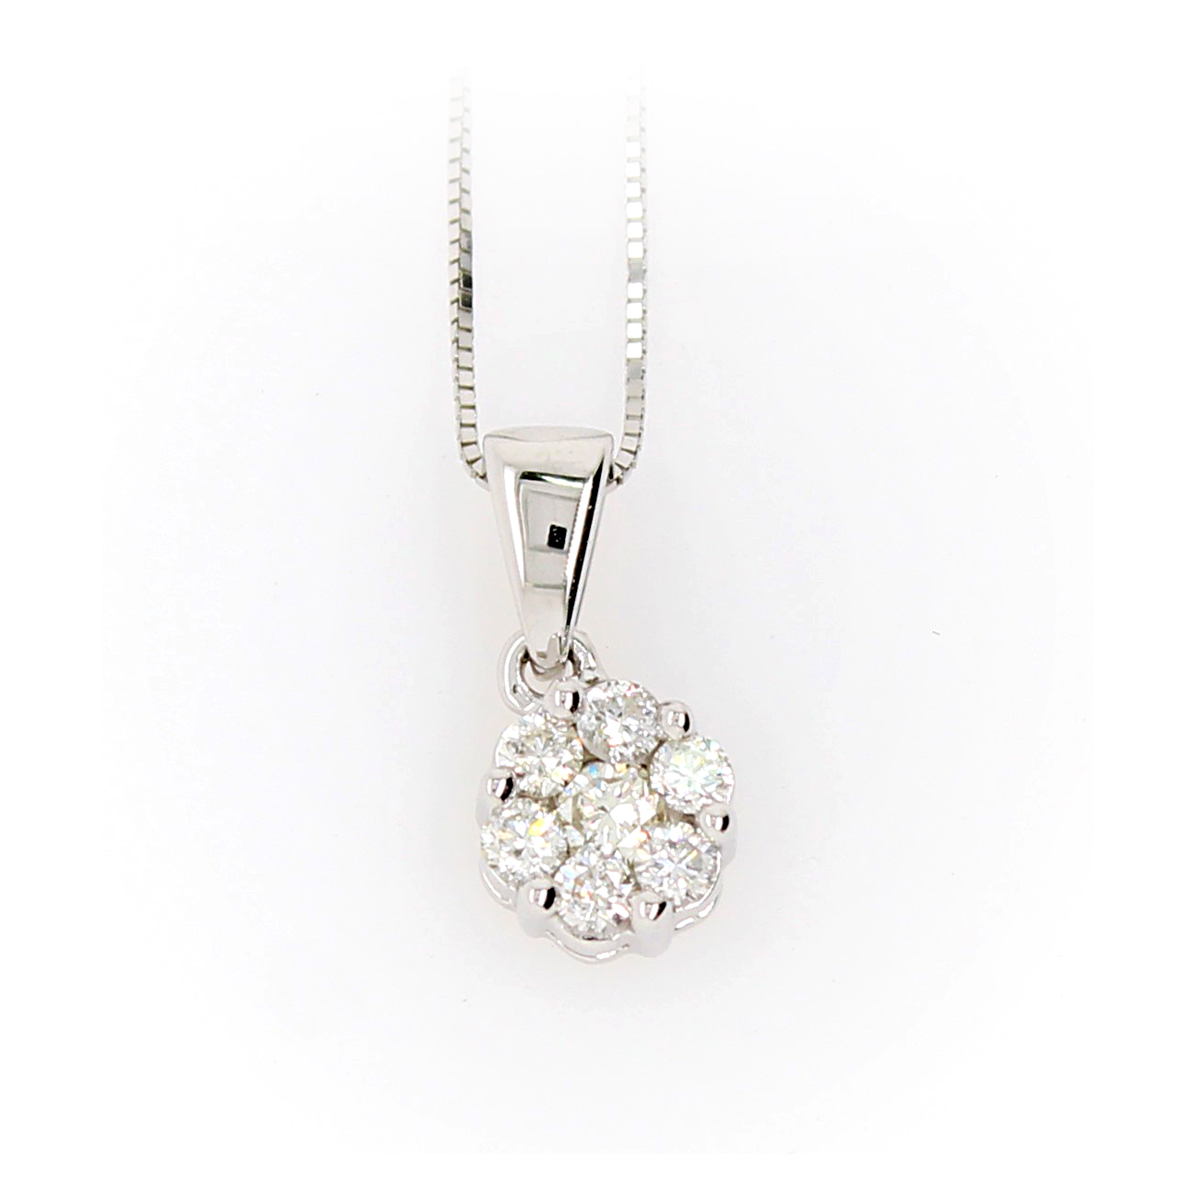 Shefi Diamonds 10 Karat White Gold Cluster Diamond Pendant Necklace